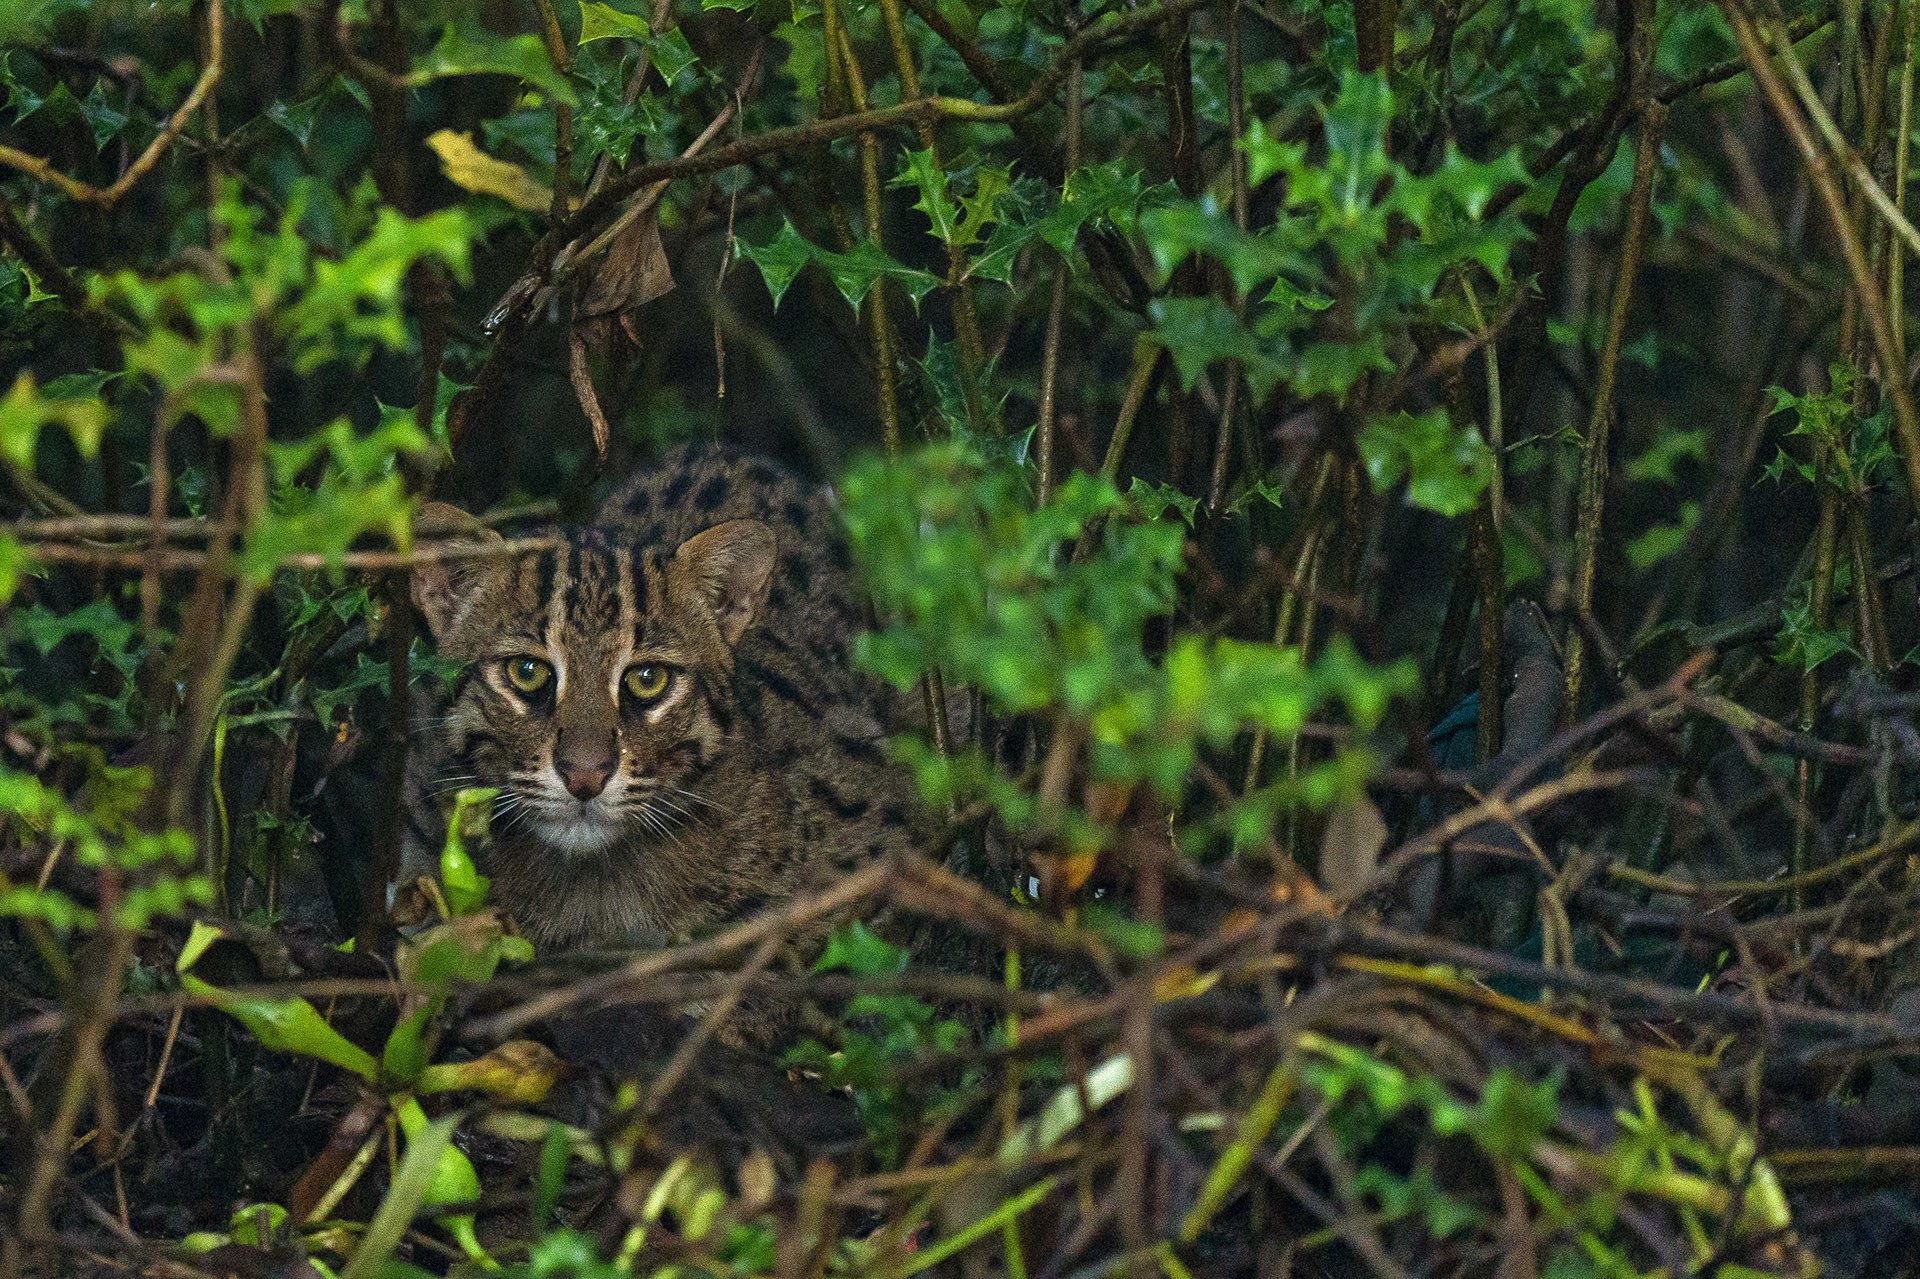 Fishing cats are considered an 'indicator species' i.e. their presence or absence indicates the quality of the ecosystem they inhabit. They are believed to have a lifespan of about 12-15 years.